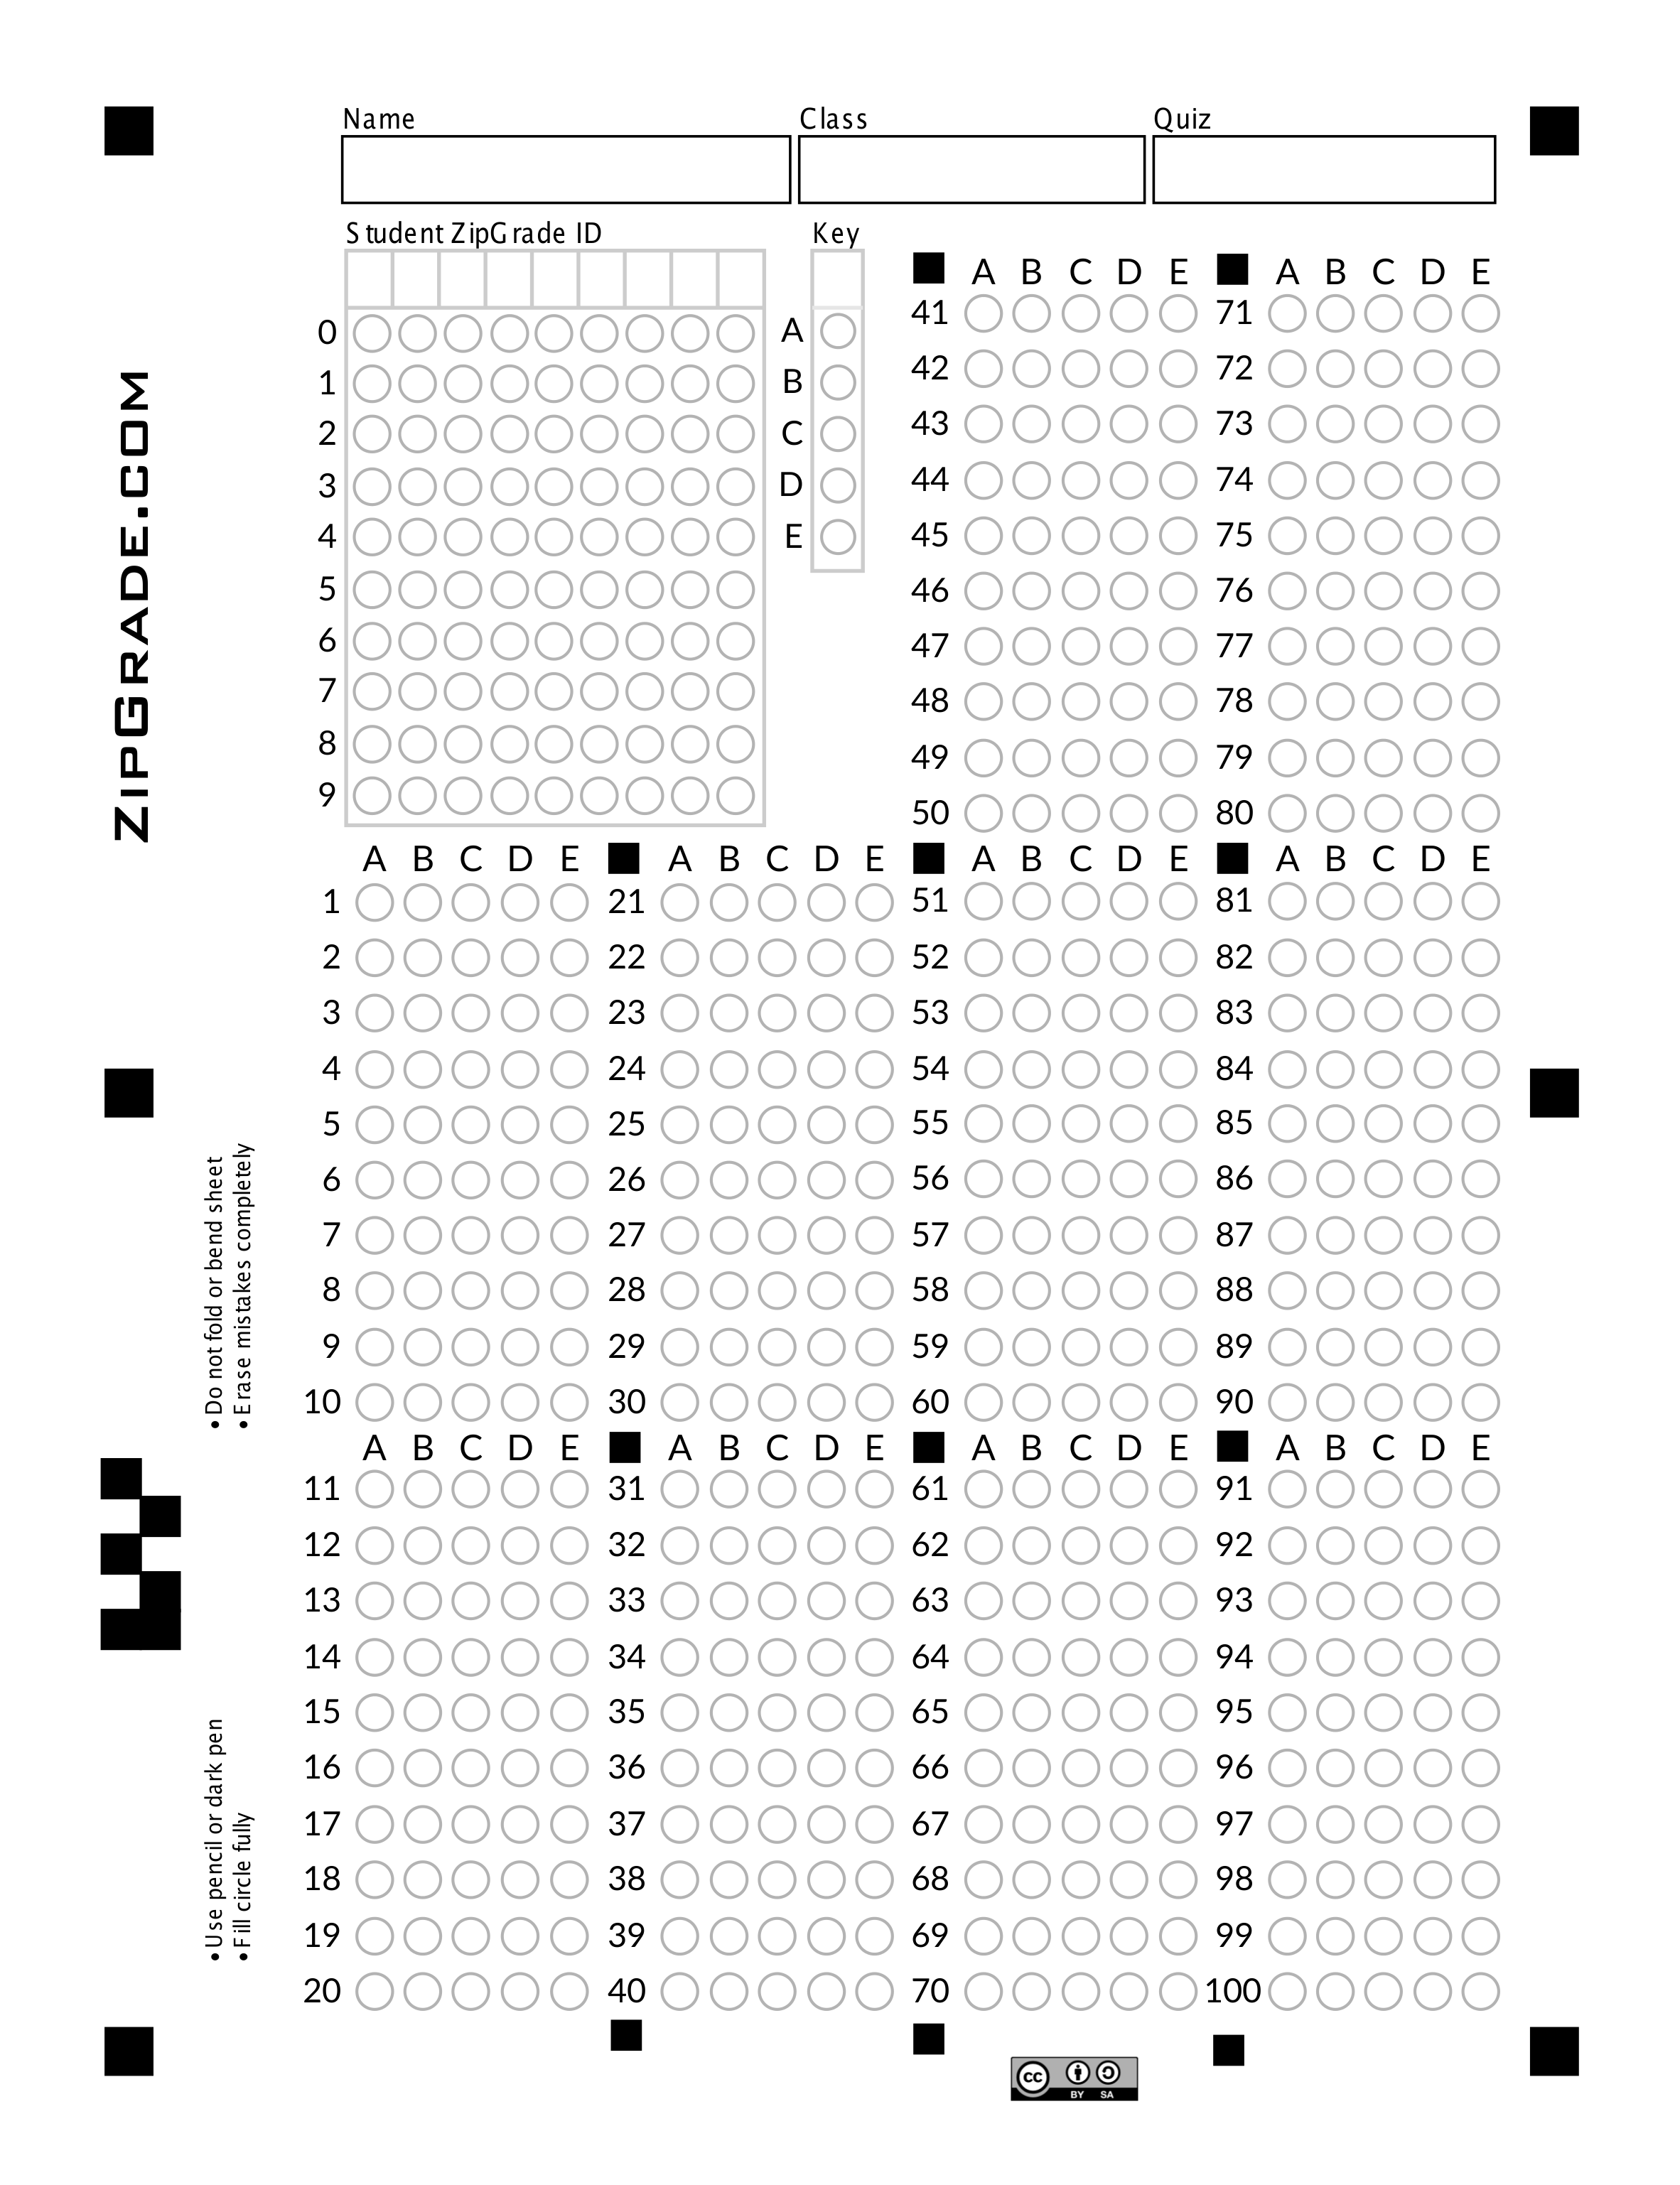 photograph about Printable Scantron Form called ZipGrade: Alternative Sheet Varieties